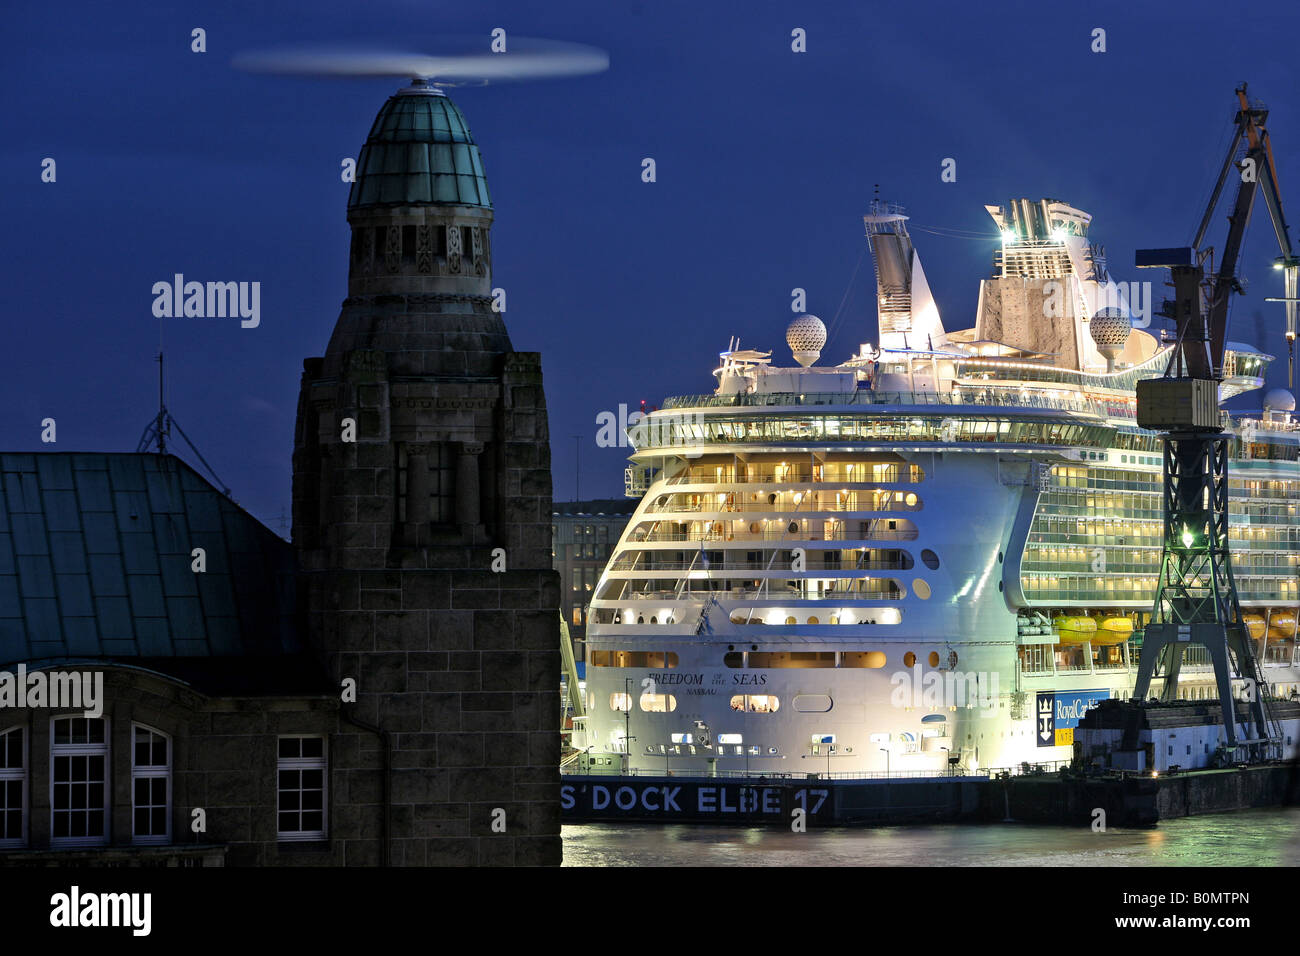 The cruise ship ' Freedom of the Seas' in dock of Blohm + Voss with historic landing bridges Landungsbruecken, - Stock Image